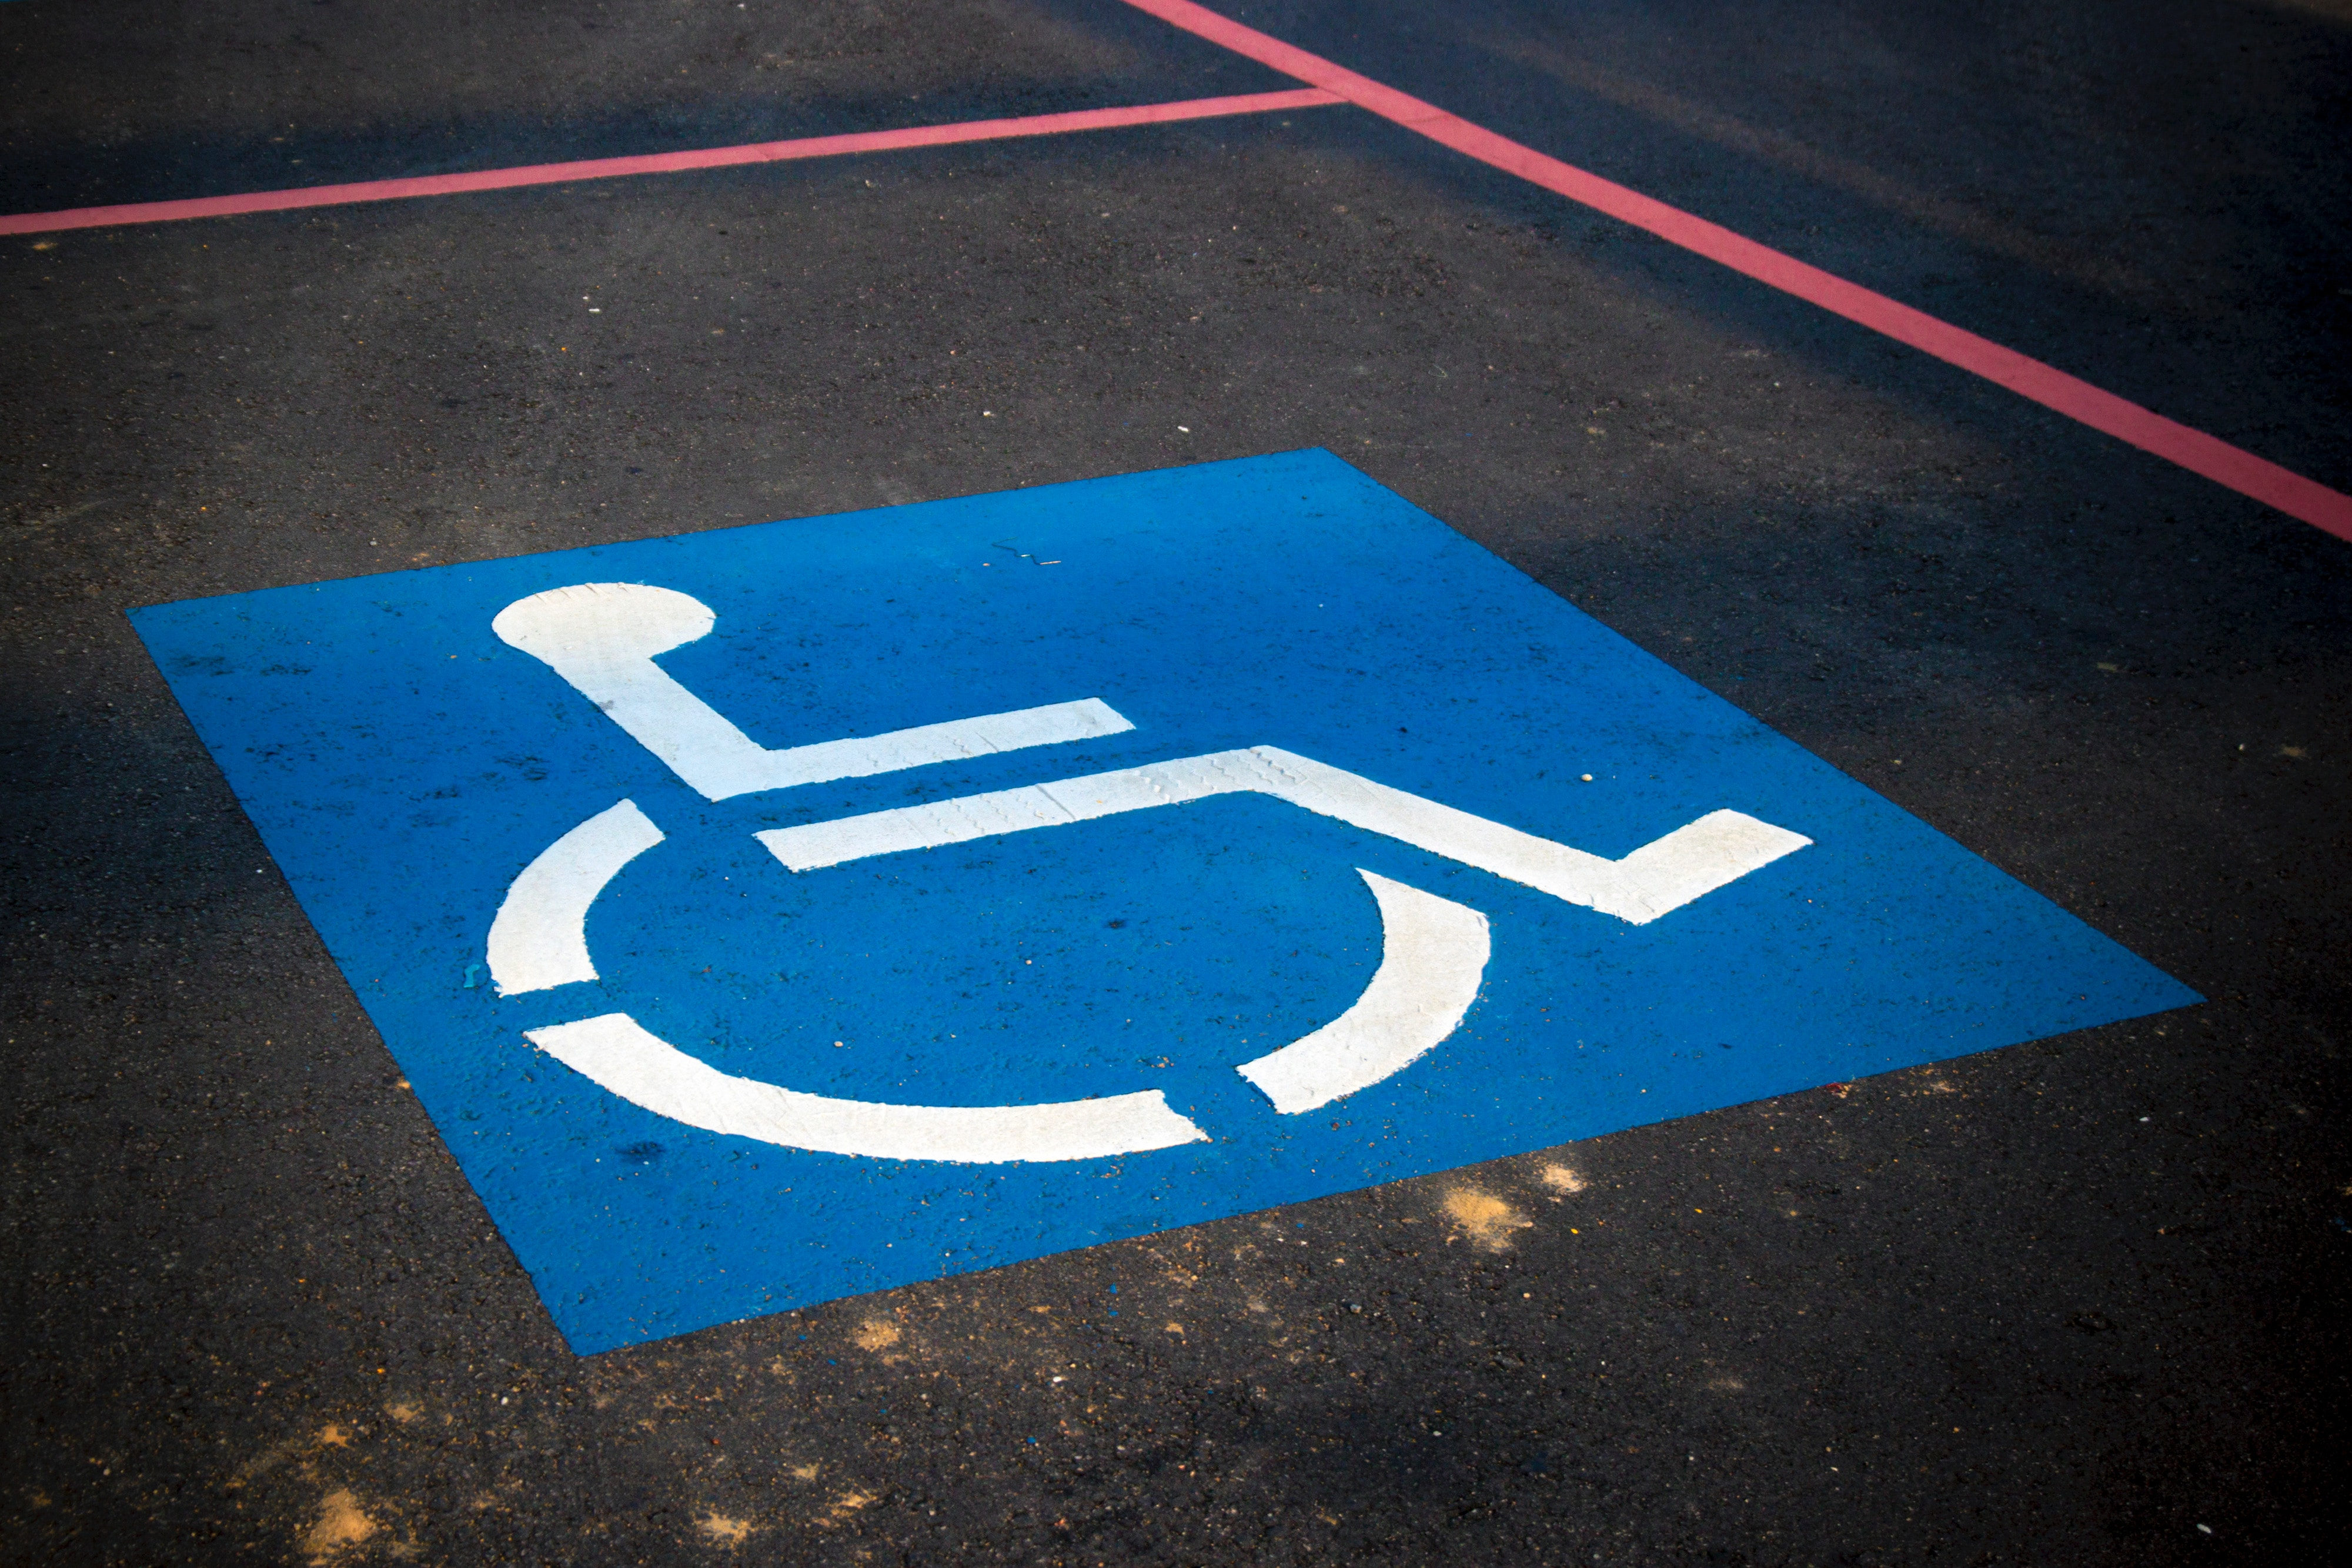 How can we make websites more accessibility friendly